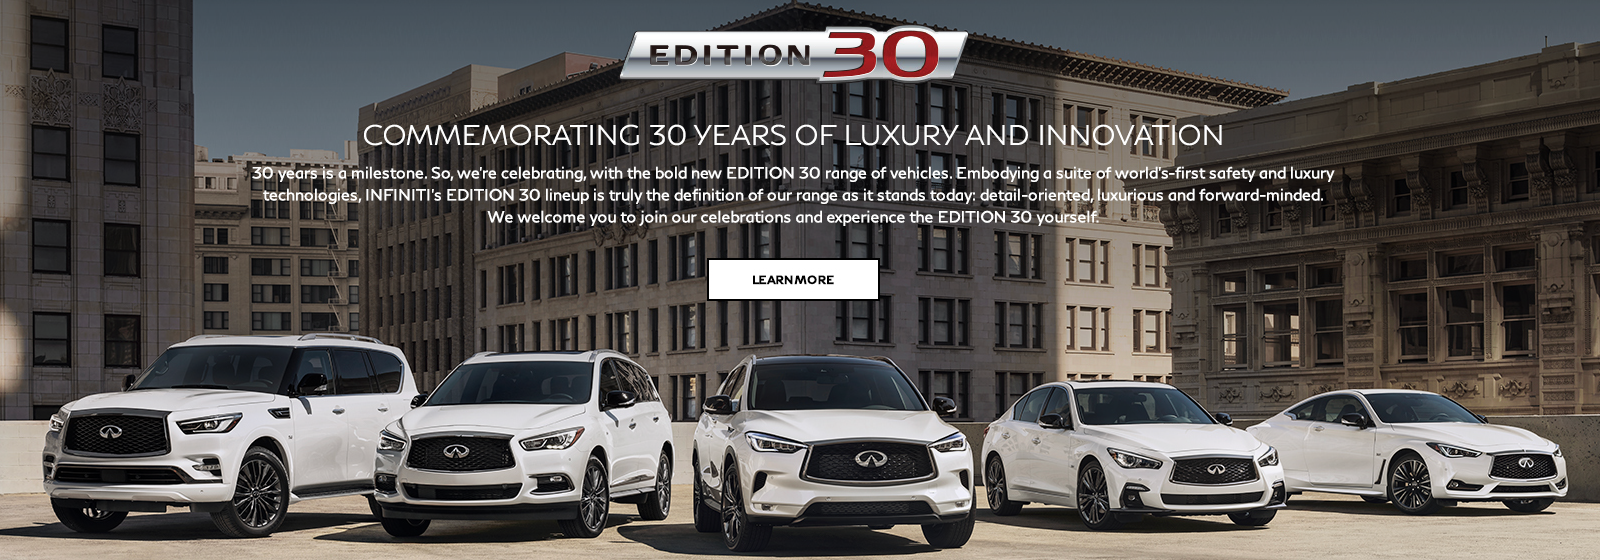 Edition 30 lineup. Image is of the Edition 30 lineup promotion.